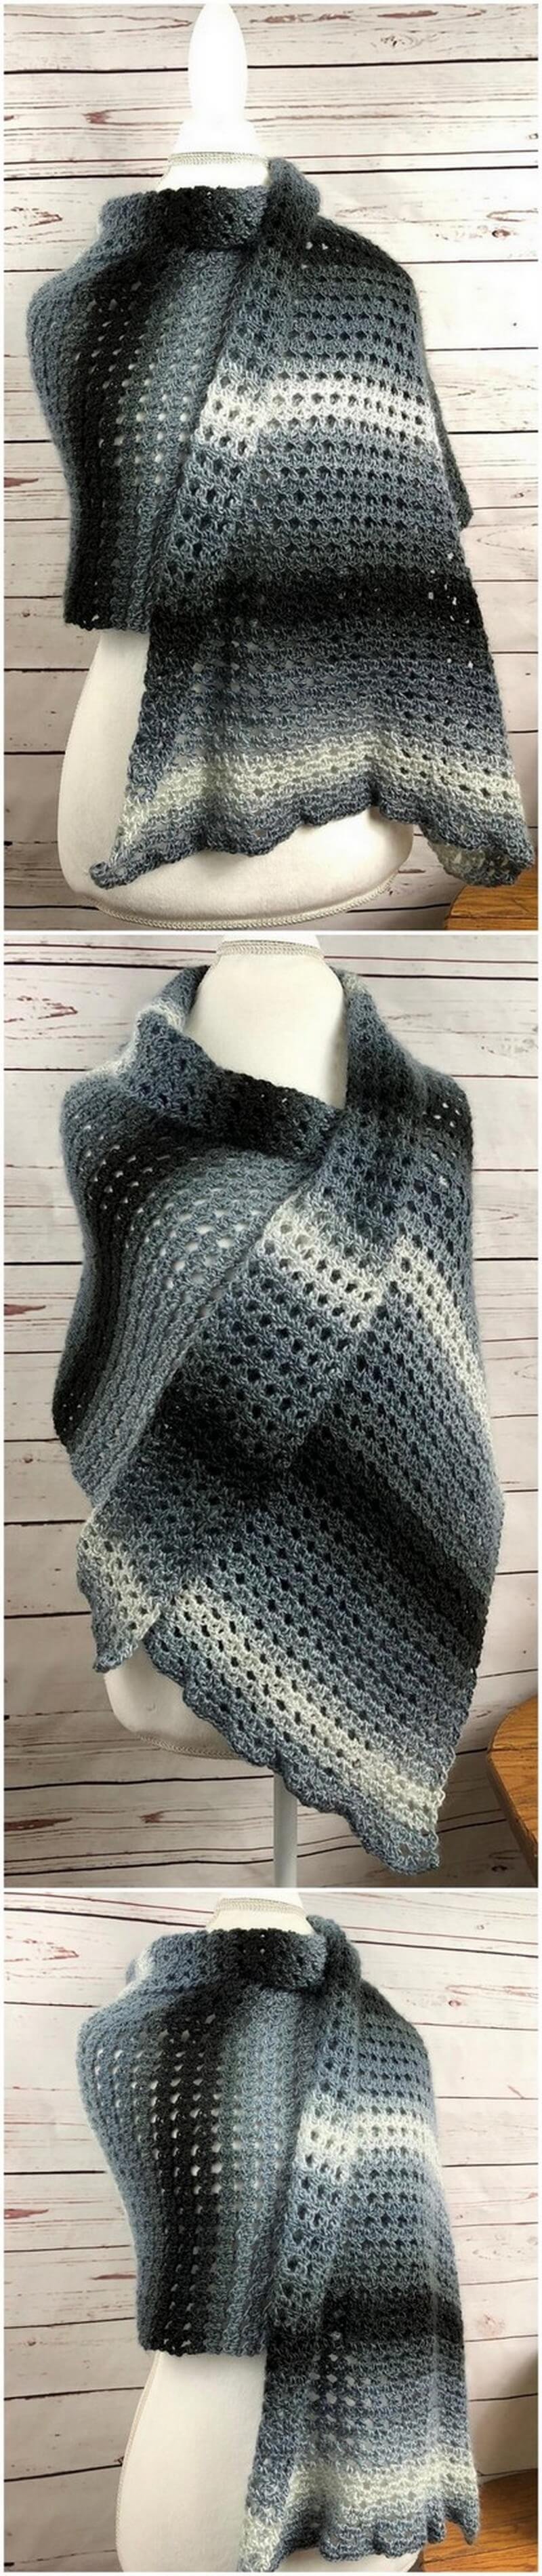 Crochet Shawl Pattern (33)